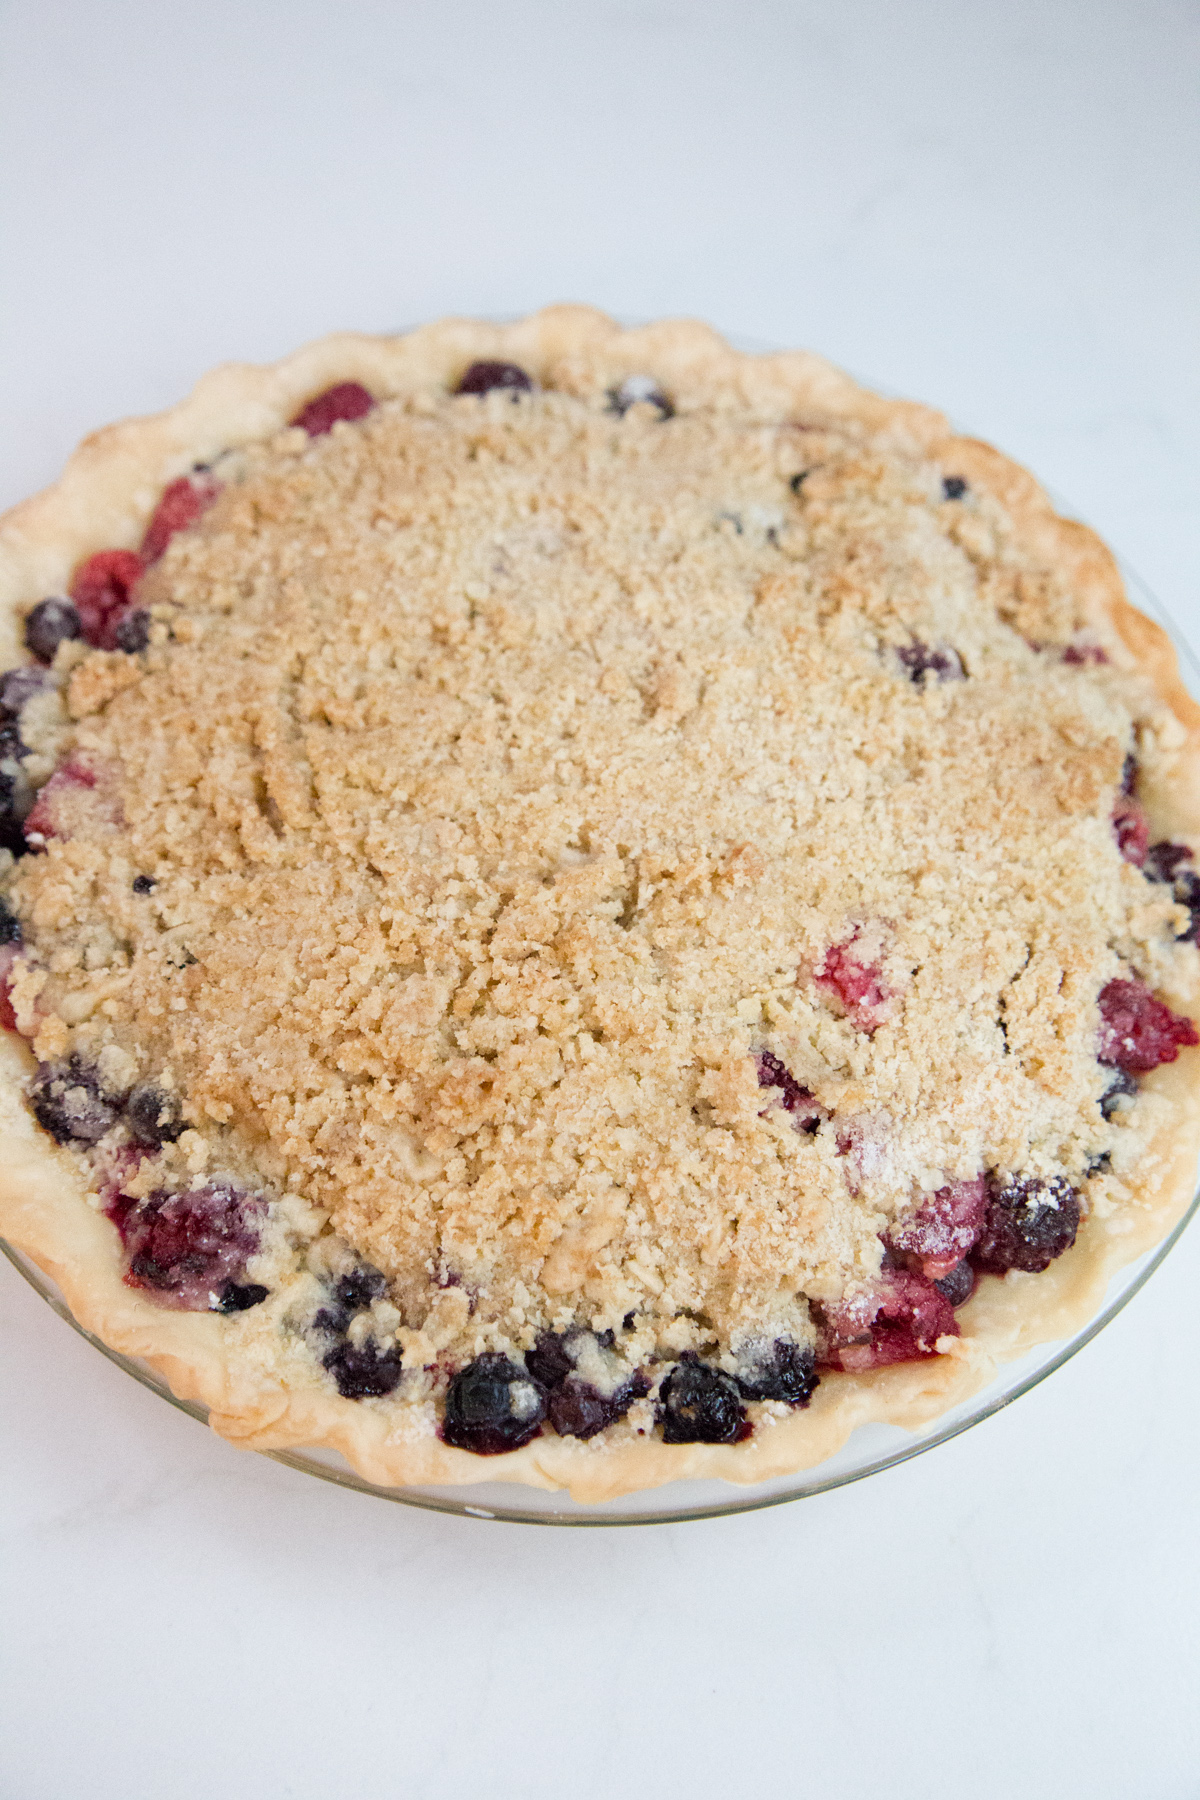 Delicious Berry Crumble Pie recipe - perfect for summer potlucks and BBQs, or a simple dessert after a weeknight dinner.